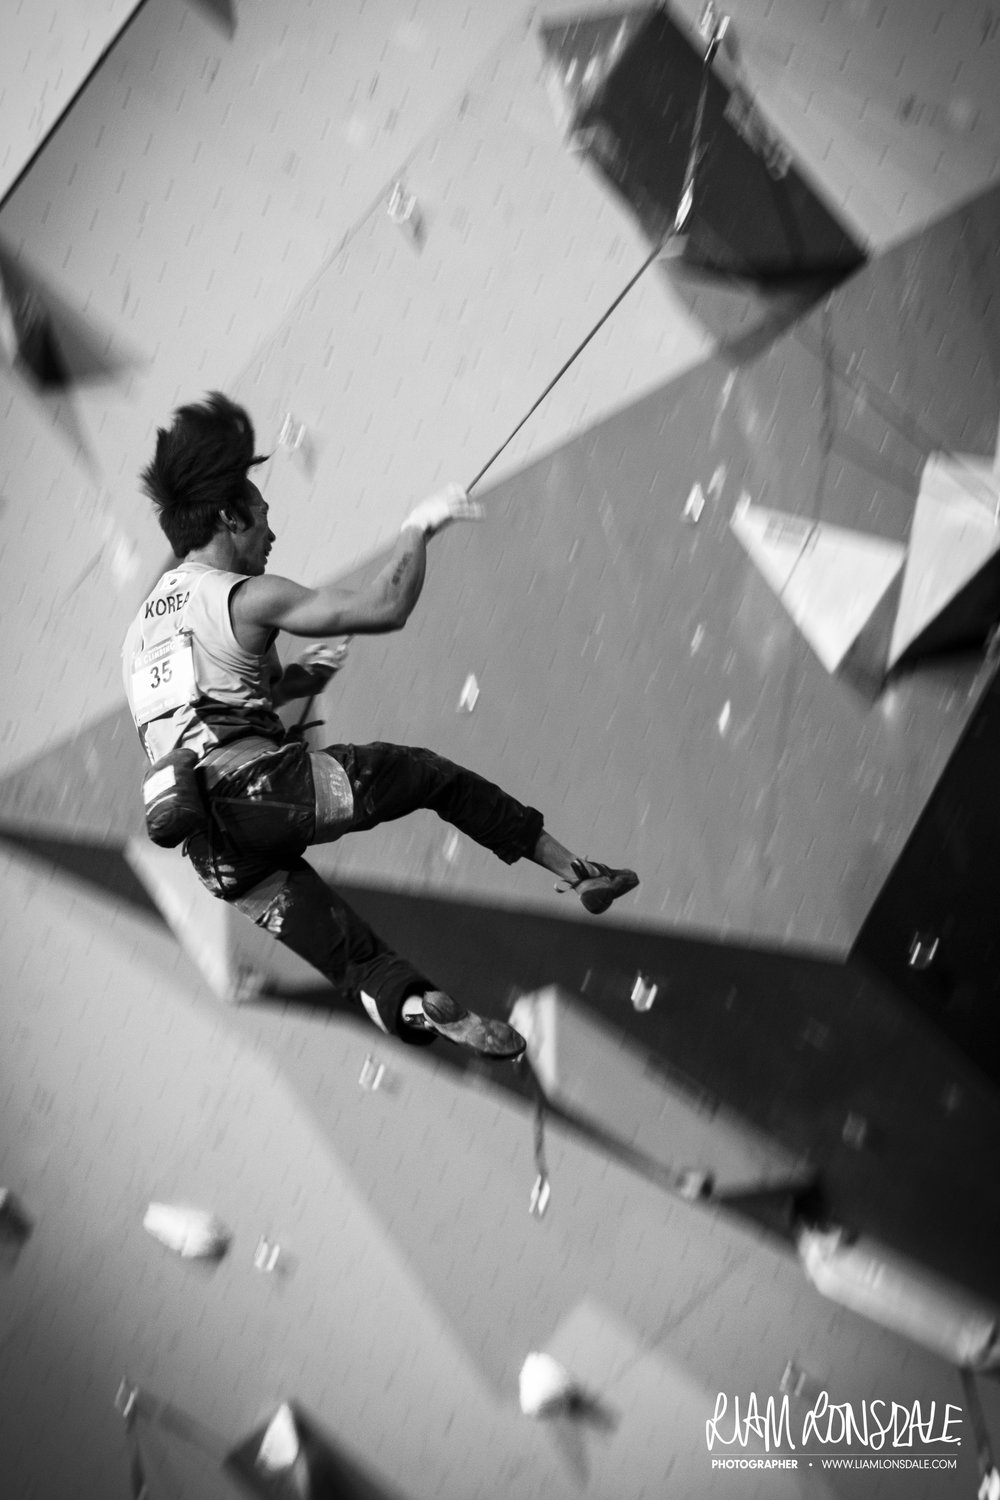 Will we see a dramatic fall in spectator numbers? Or will the +100,000 FloSport subscribers help to make up the shortage of climbers tuning in?